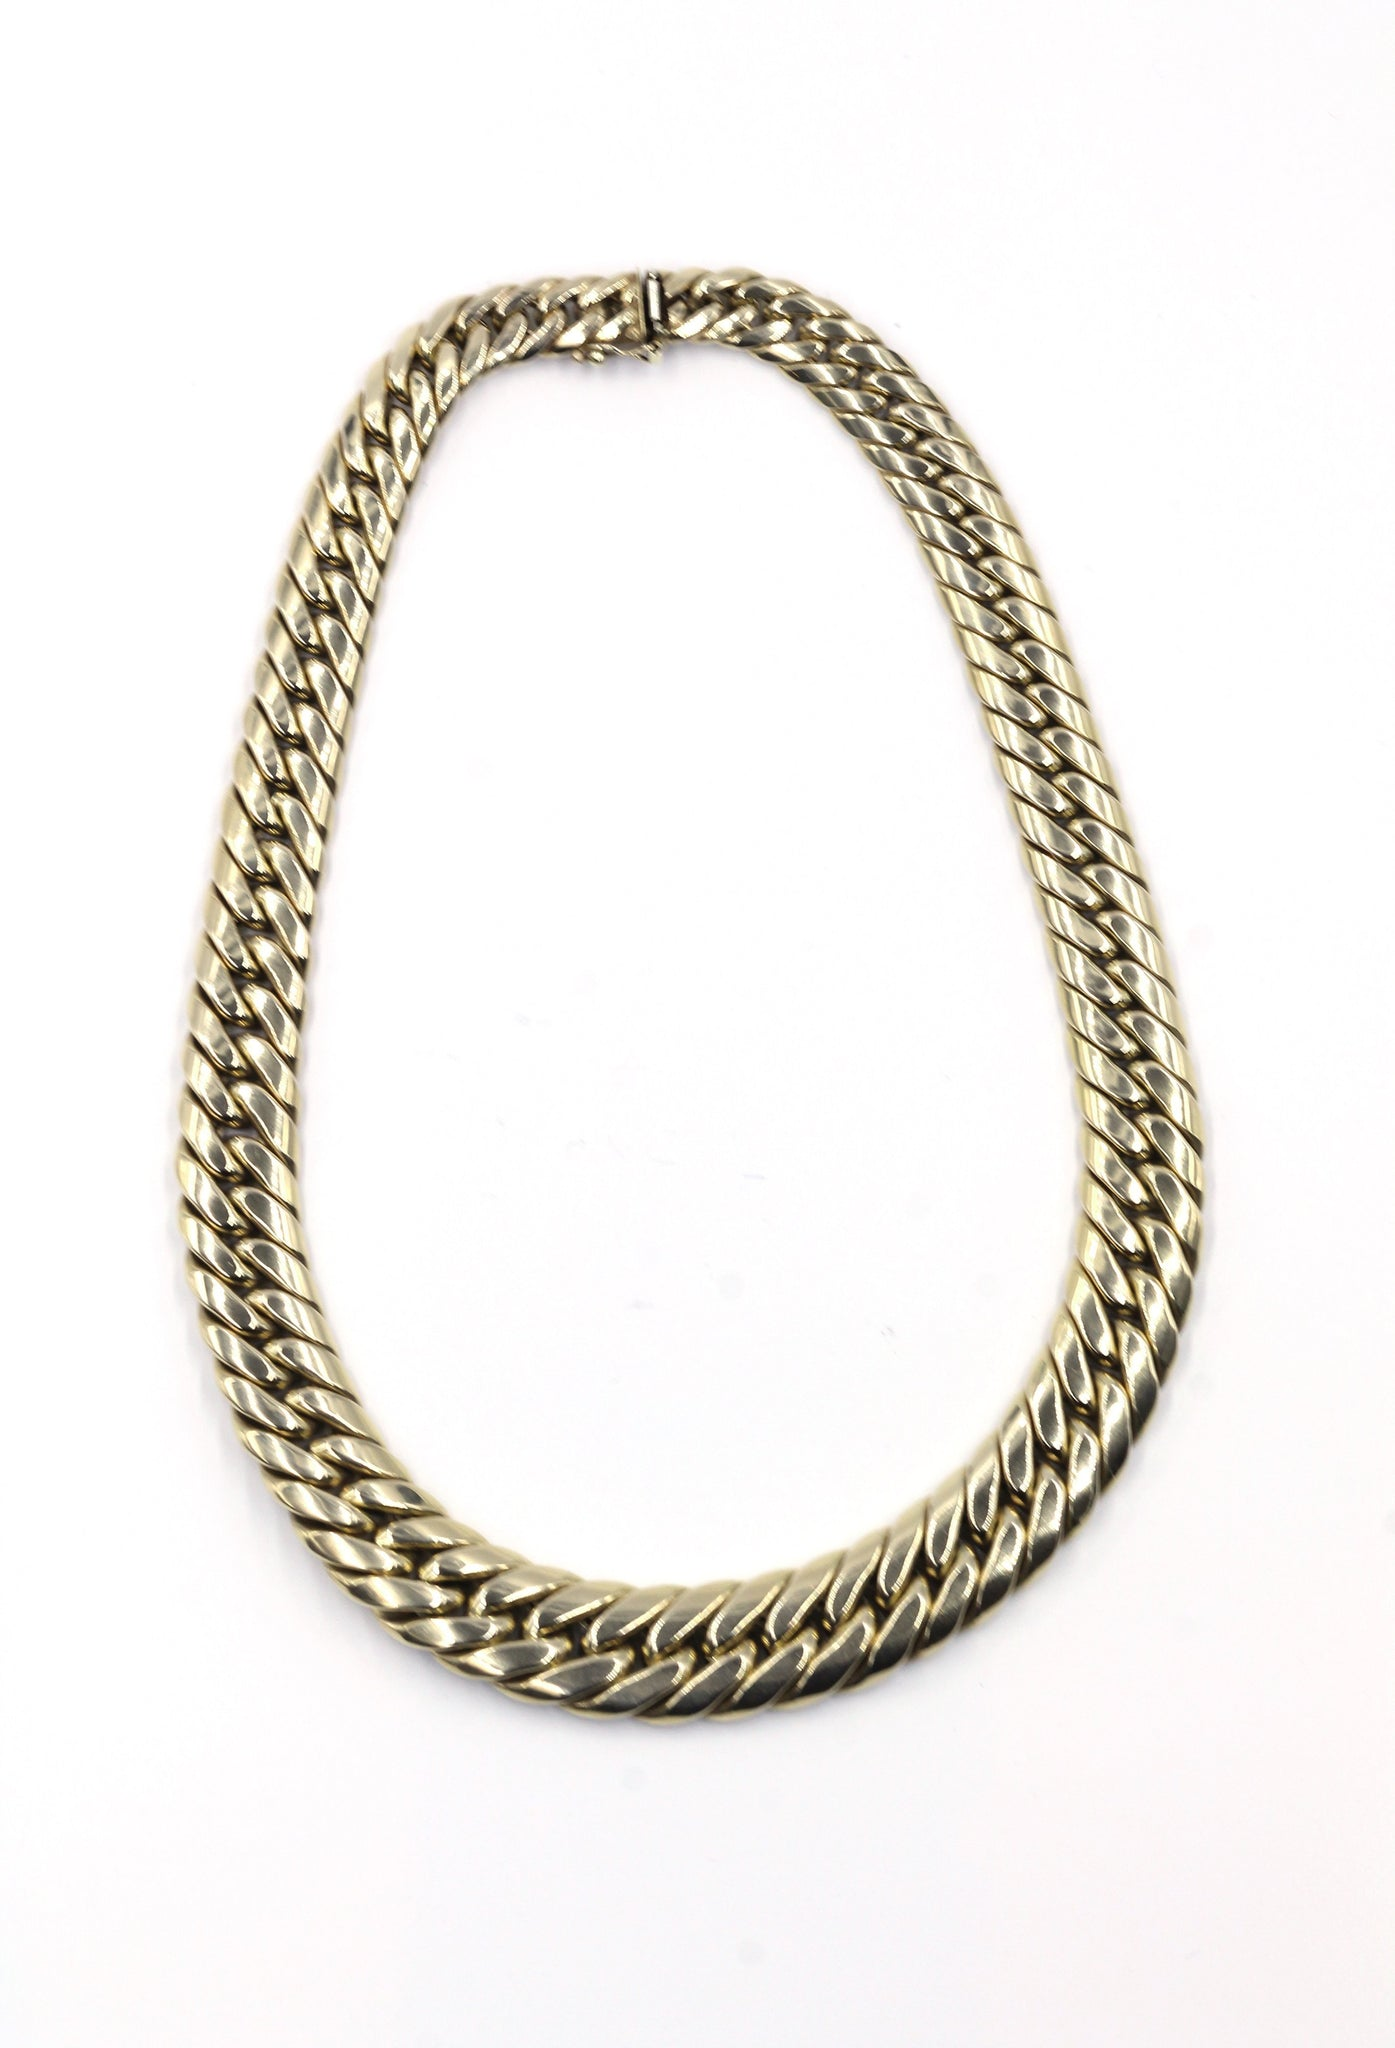 Vintage Gold Link Chain, SOLD